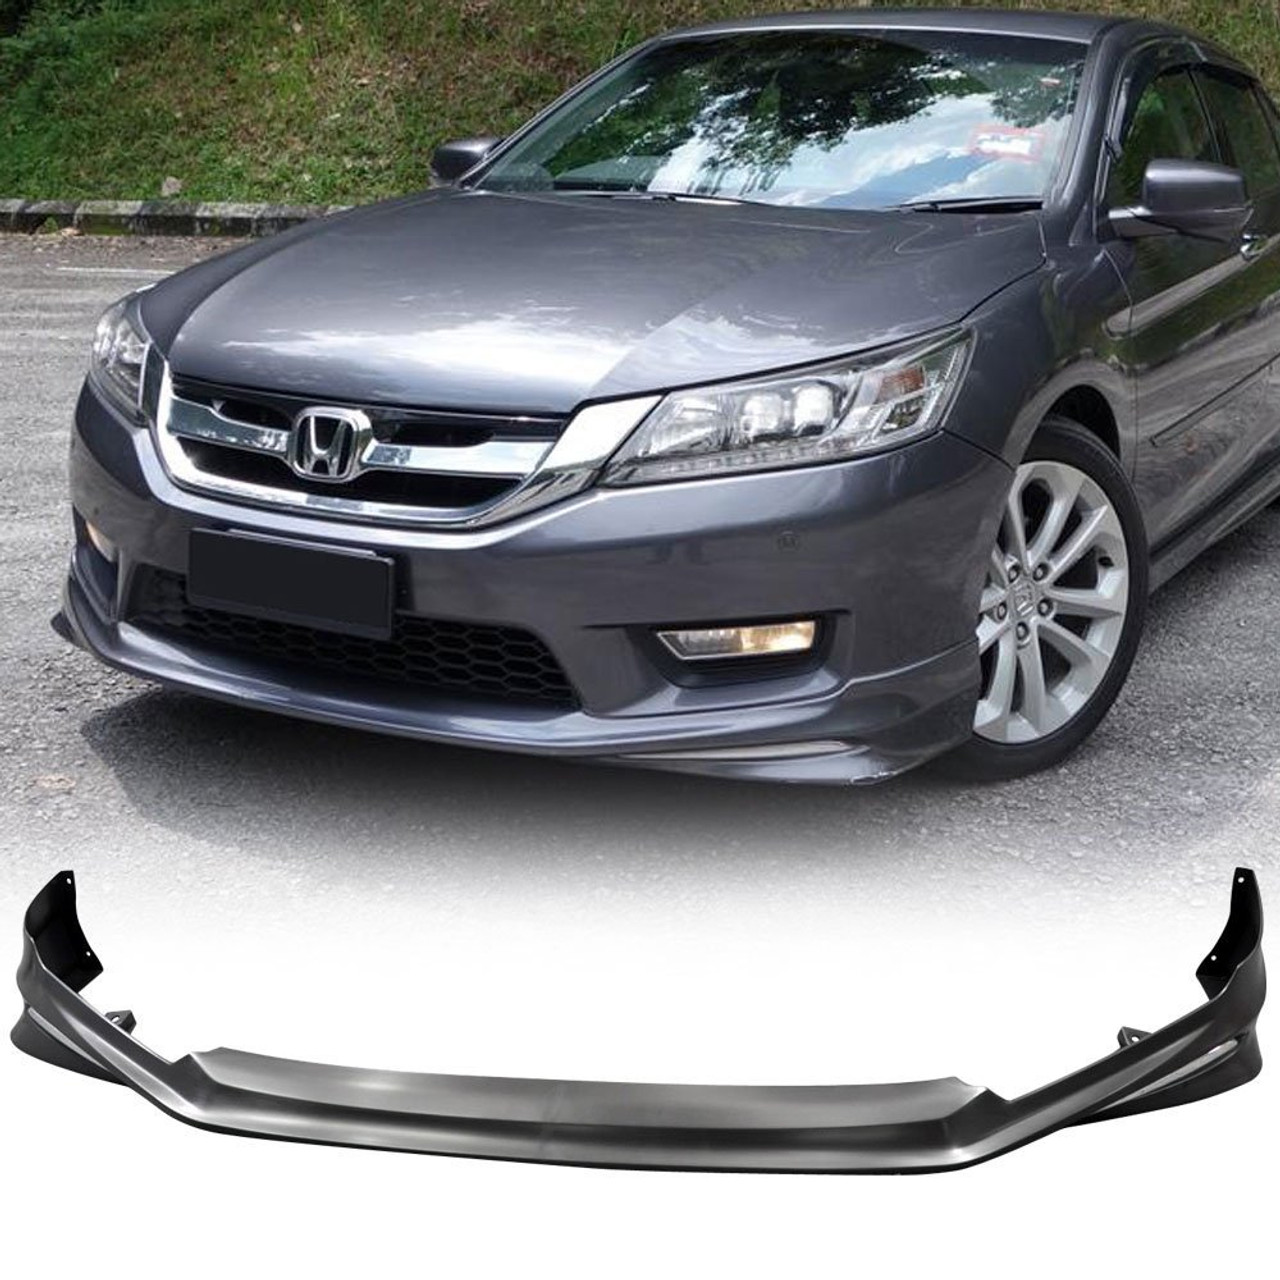 Bumper Trim For 2013-2015 Honda Accord Front